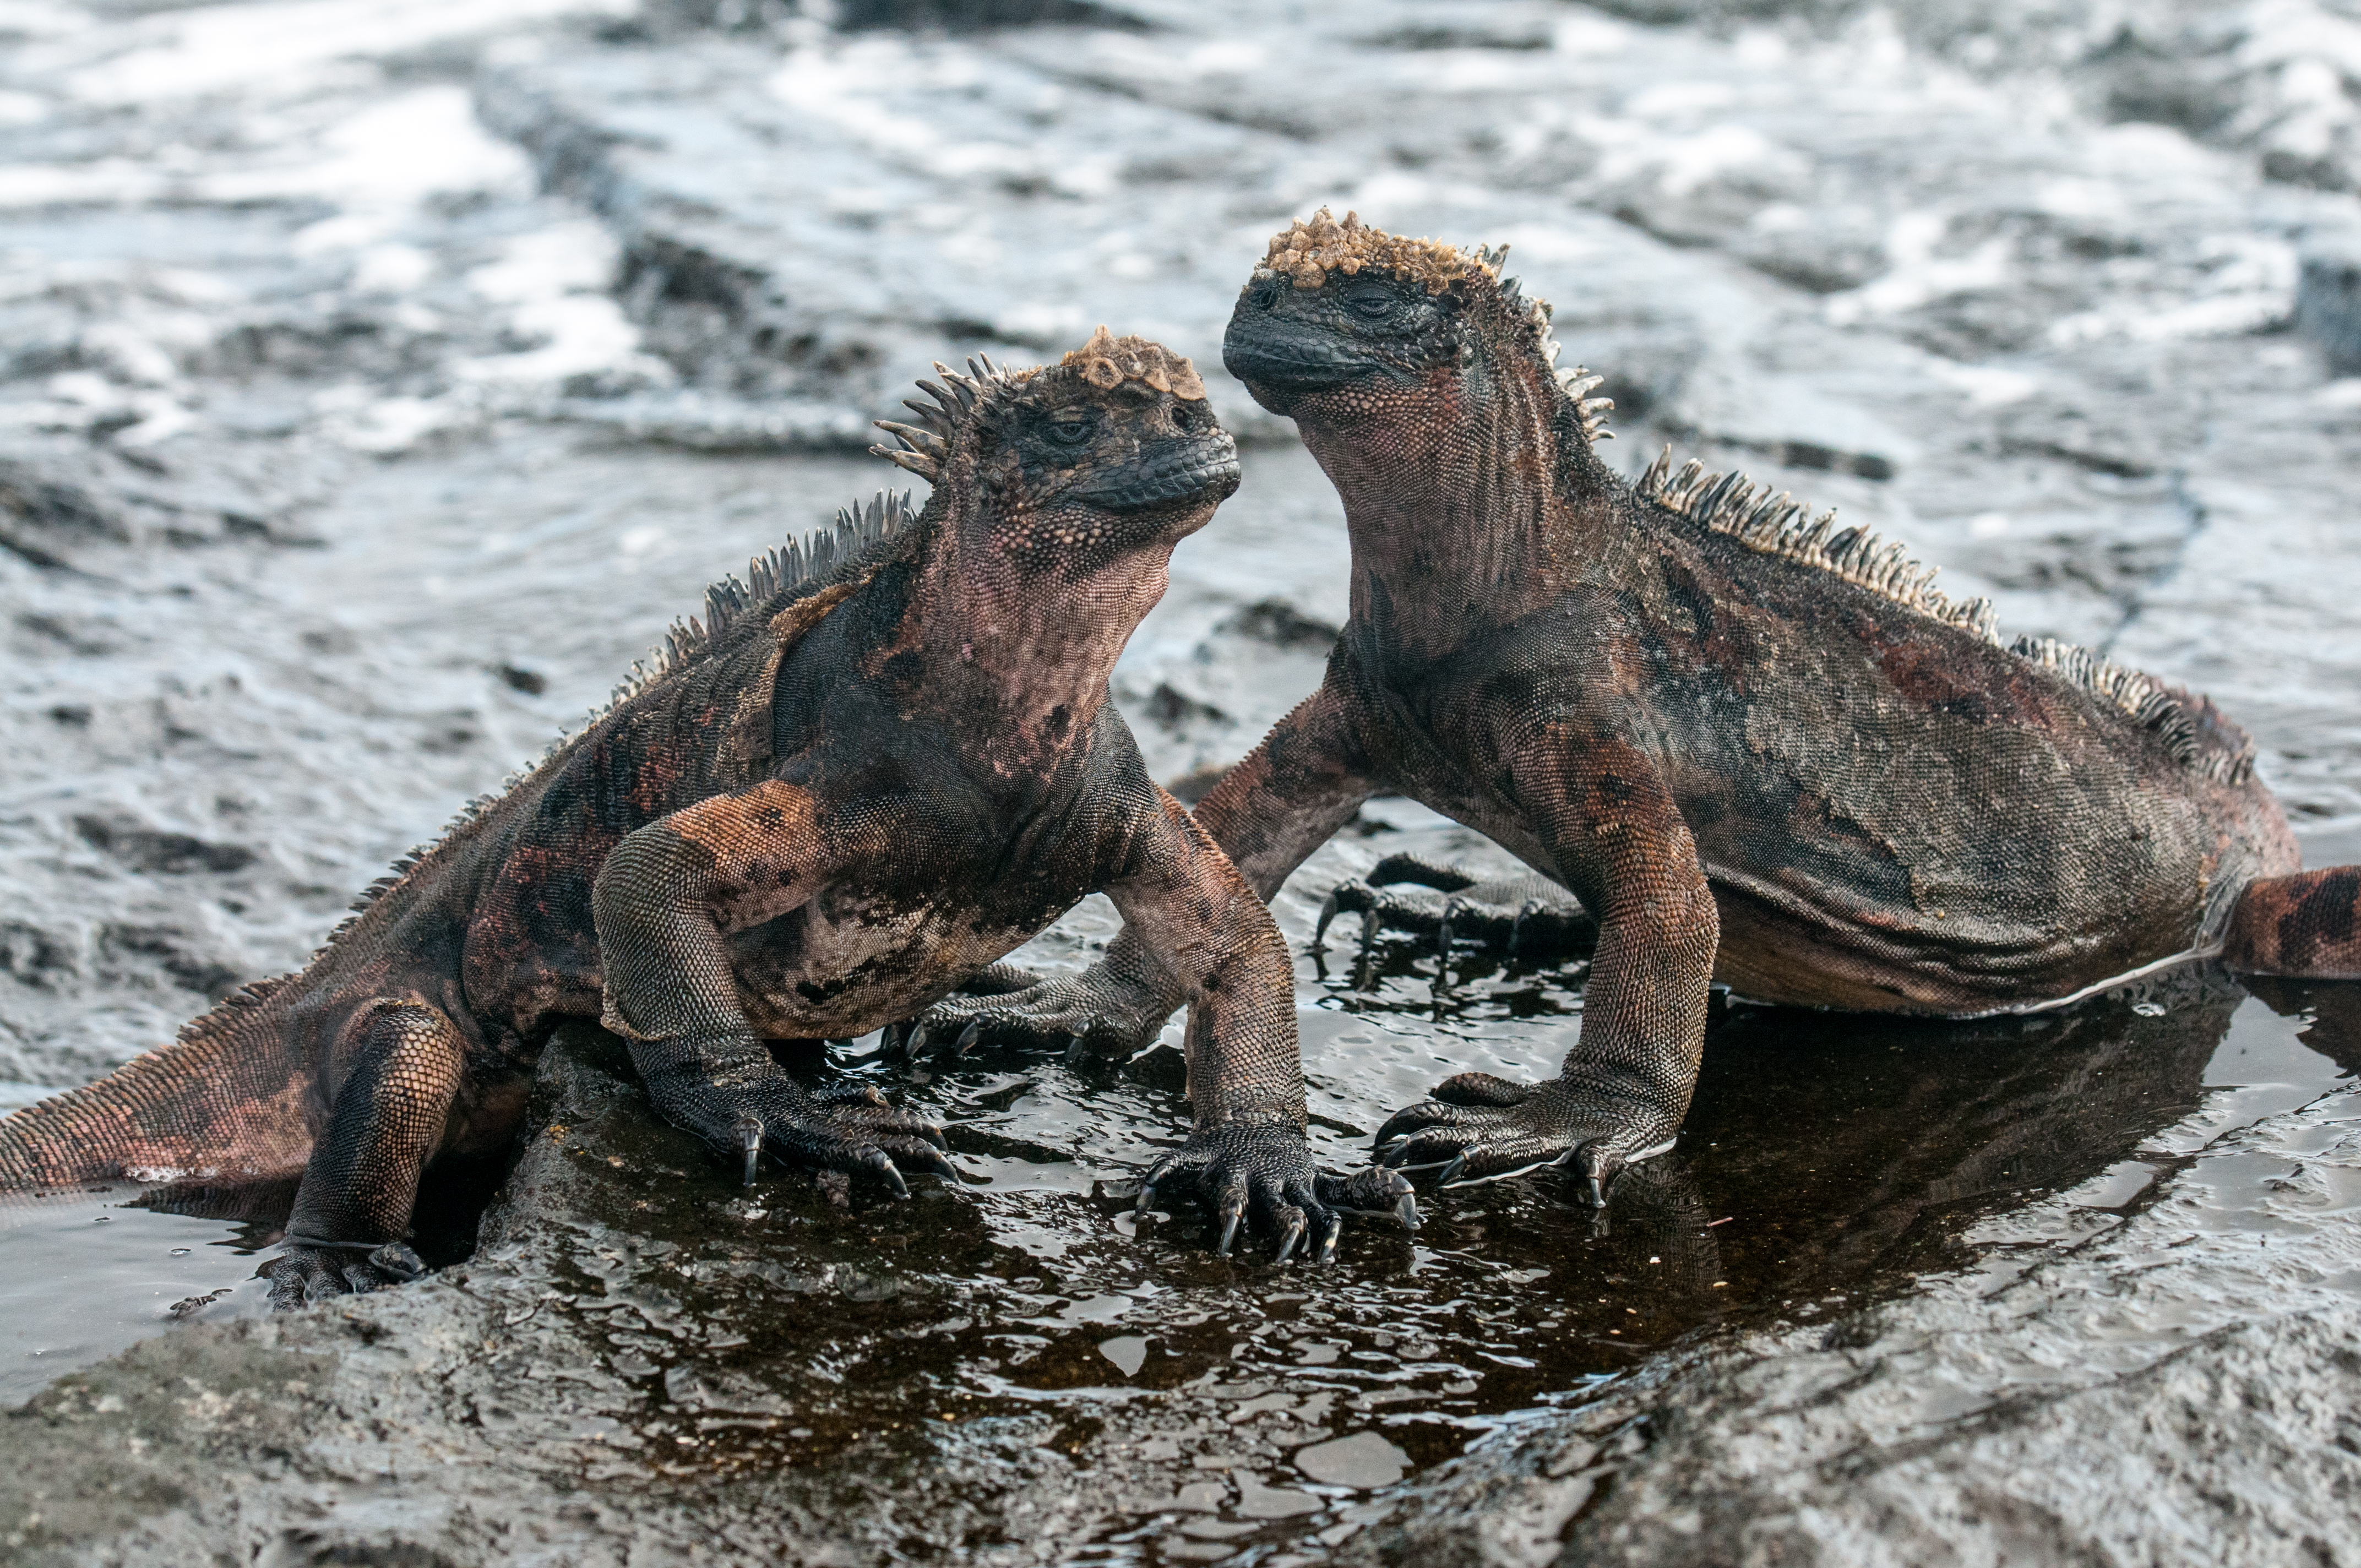 The marine iguana is the only species of iguana that has evolved to feed underwater on algae and seaweed. © WWF-US/Rachel Kramer